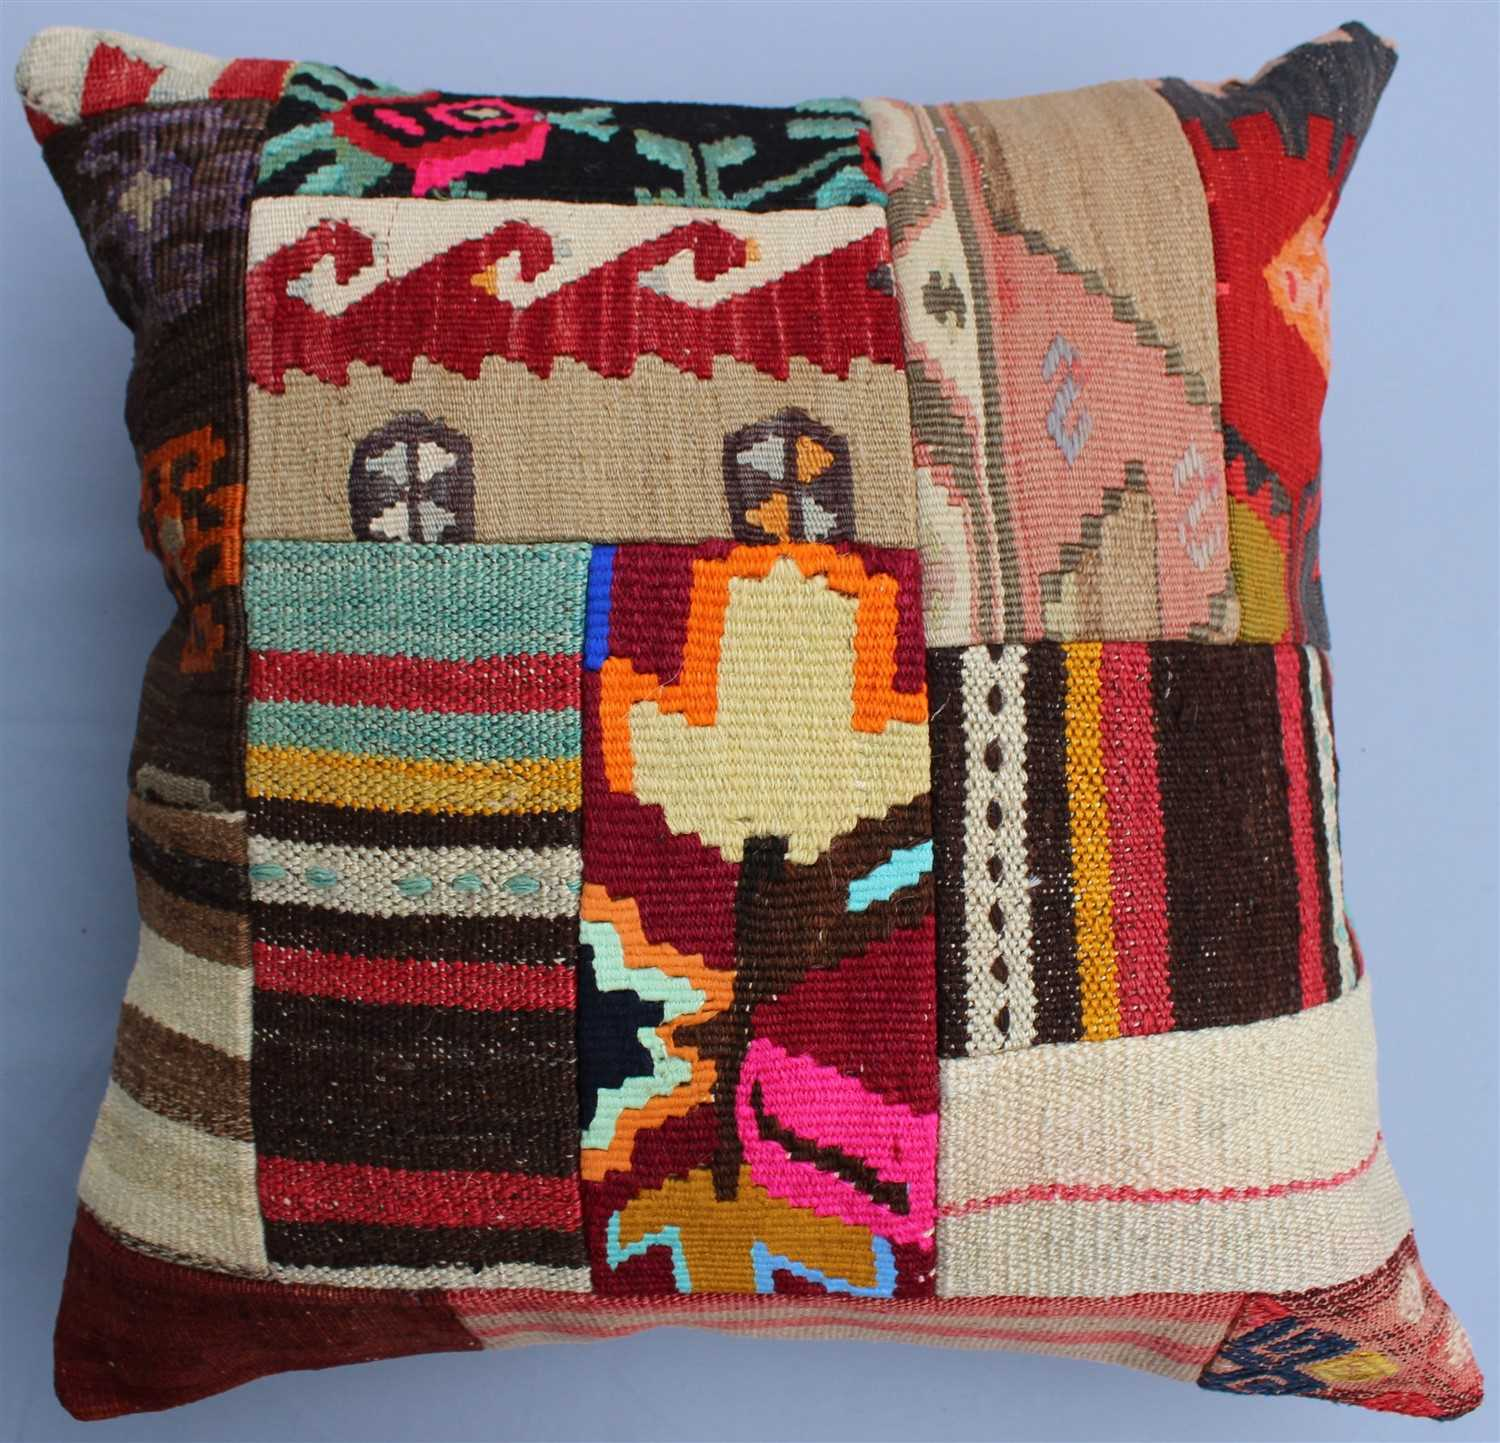 for cover shop online pillow kilim bohemian wholesale pillows